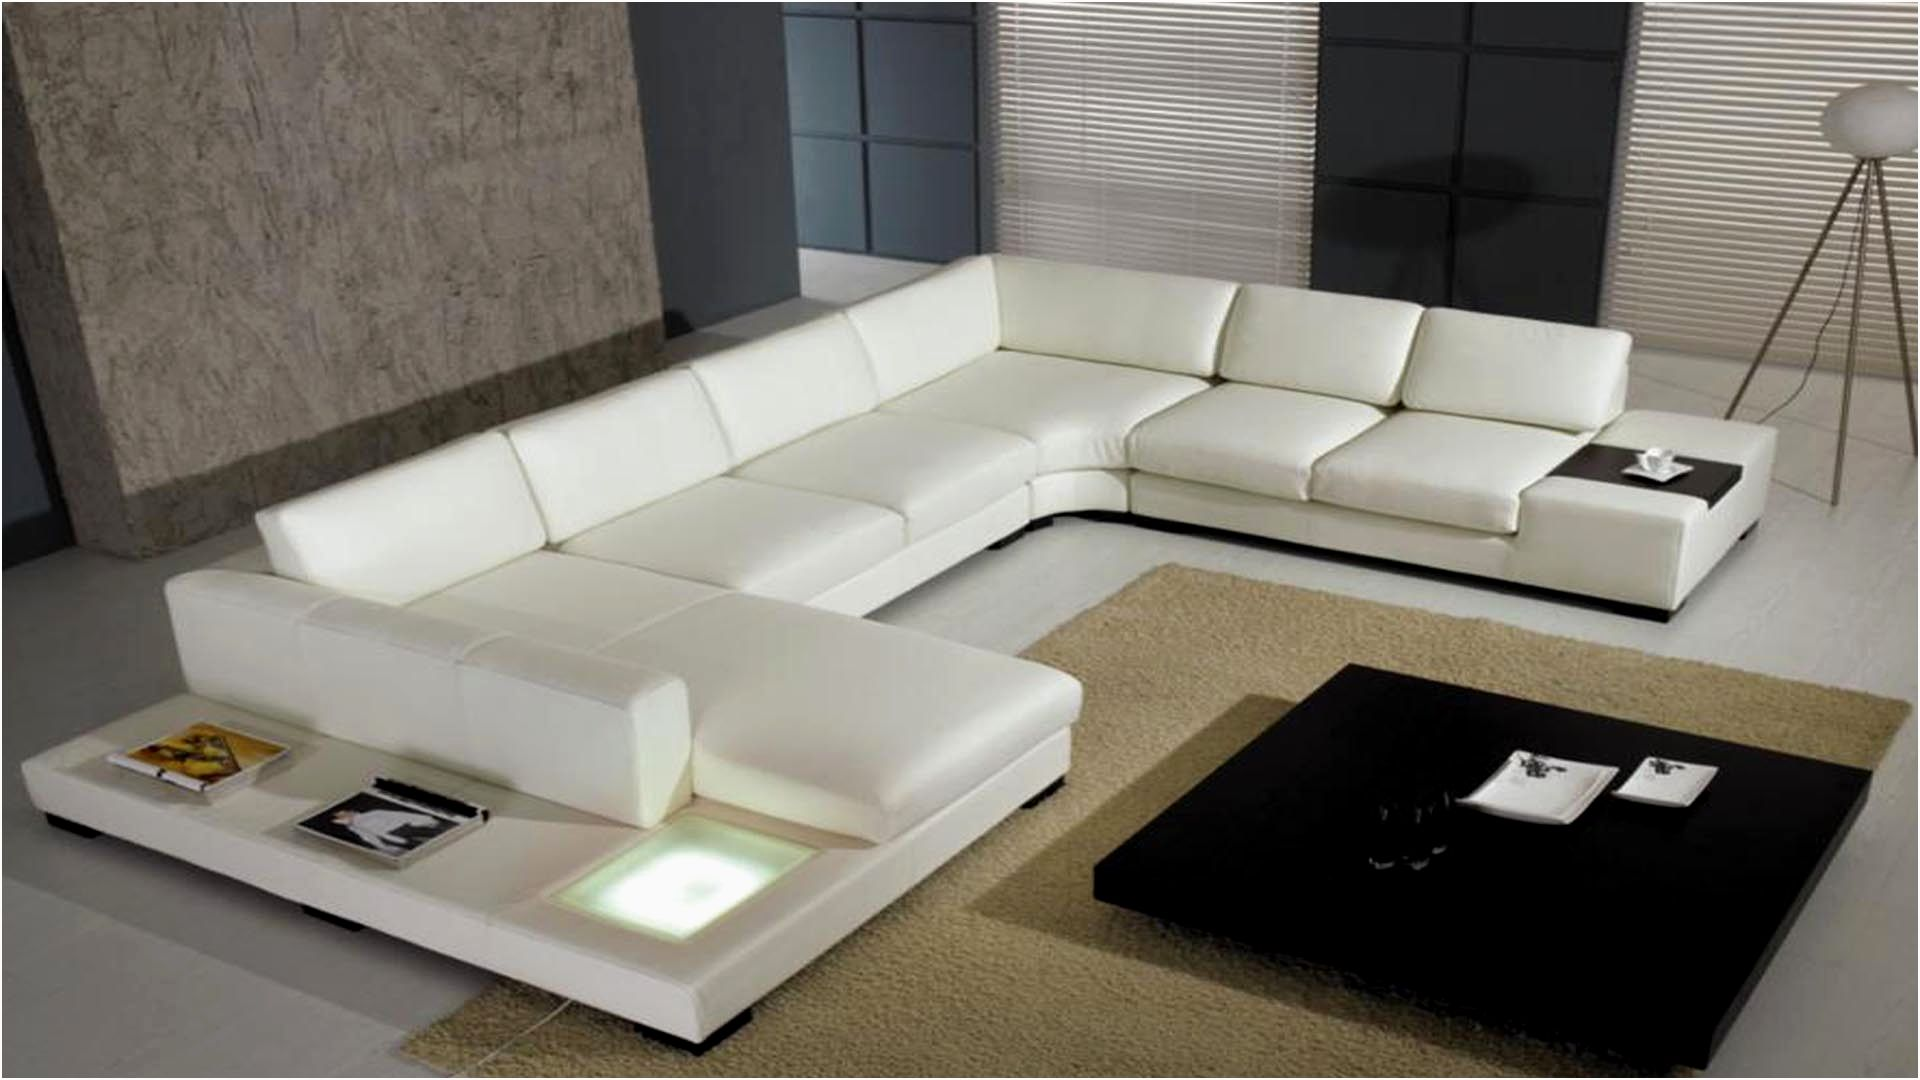 fantastic cheap leather sofas for sale picture-Unique Cheap Leather sofas for Sale Gallery